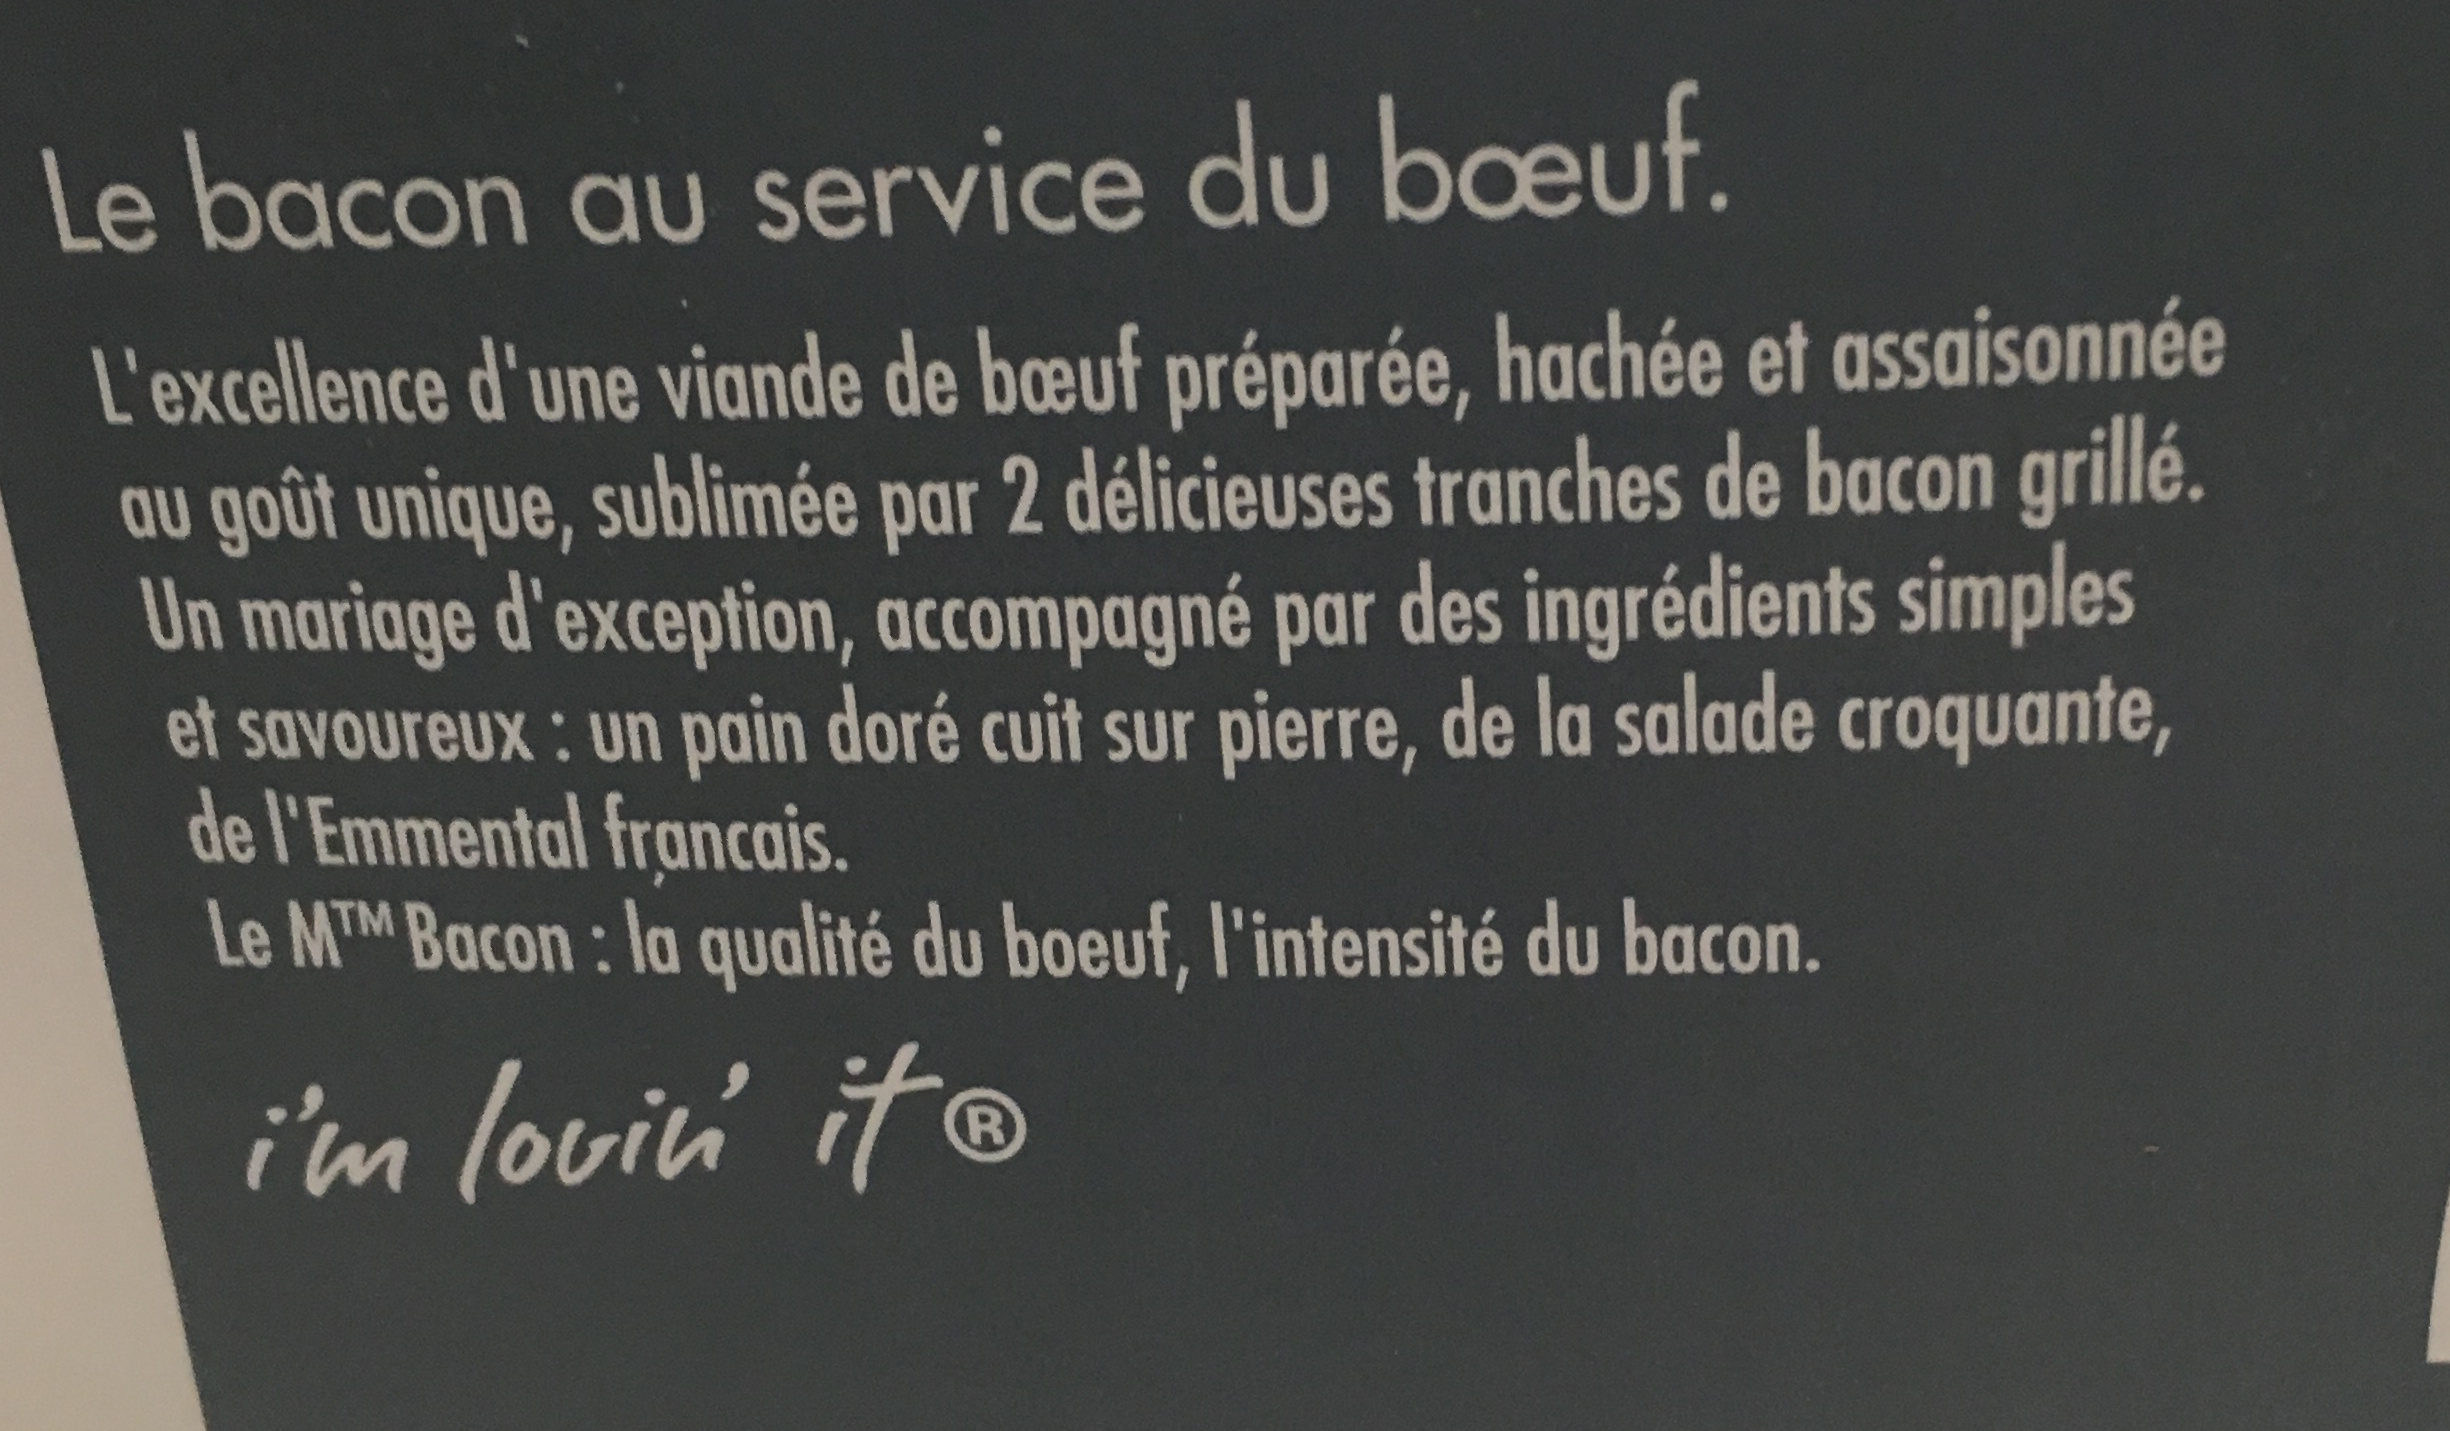 Le M Bacon - Ingredients